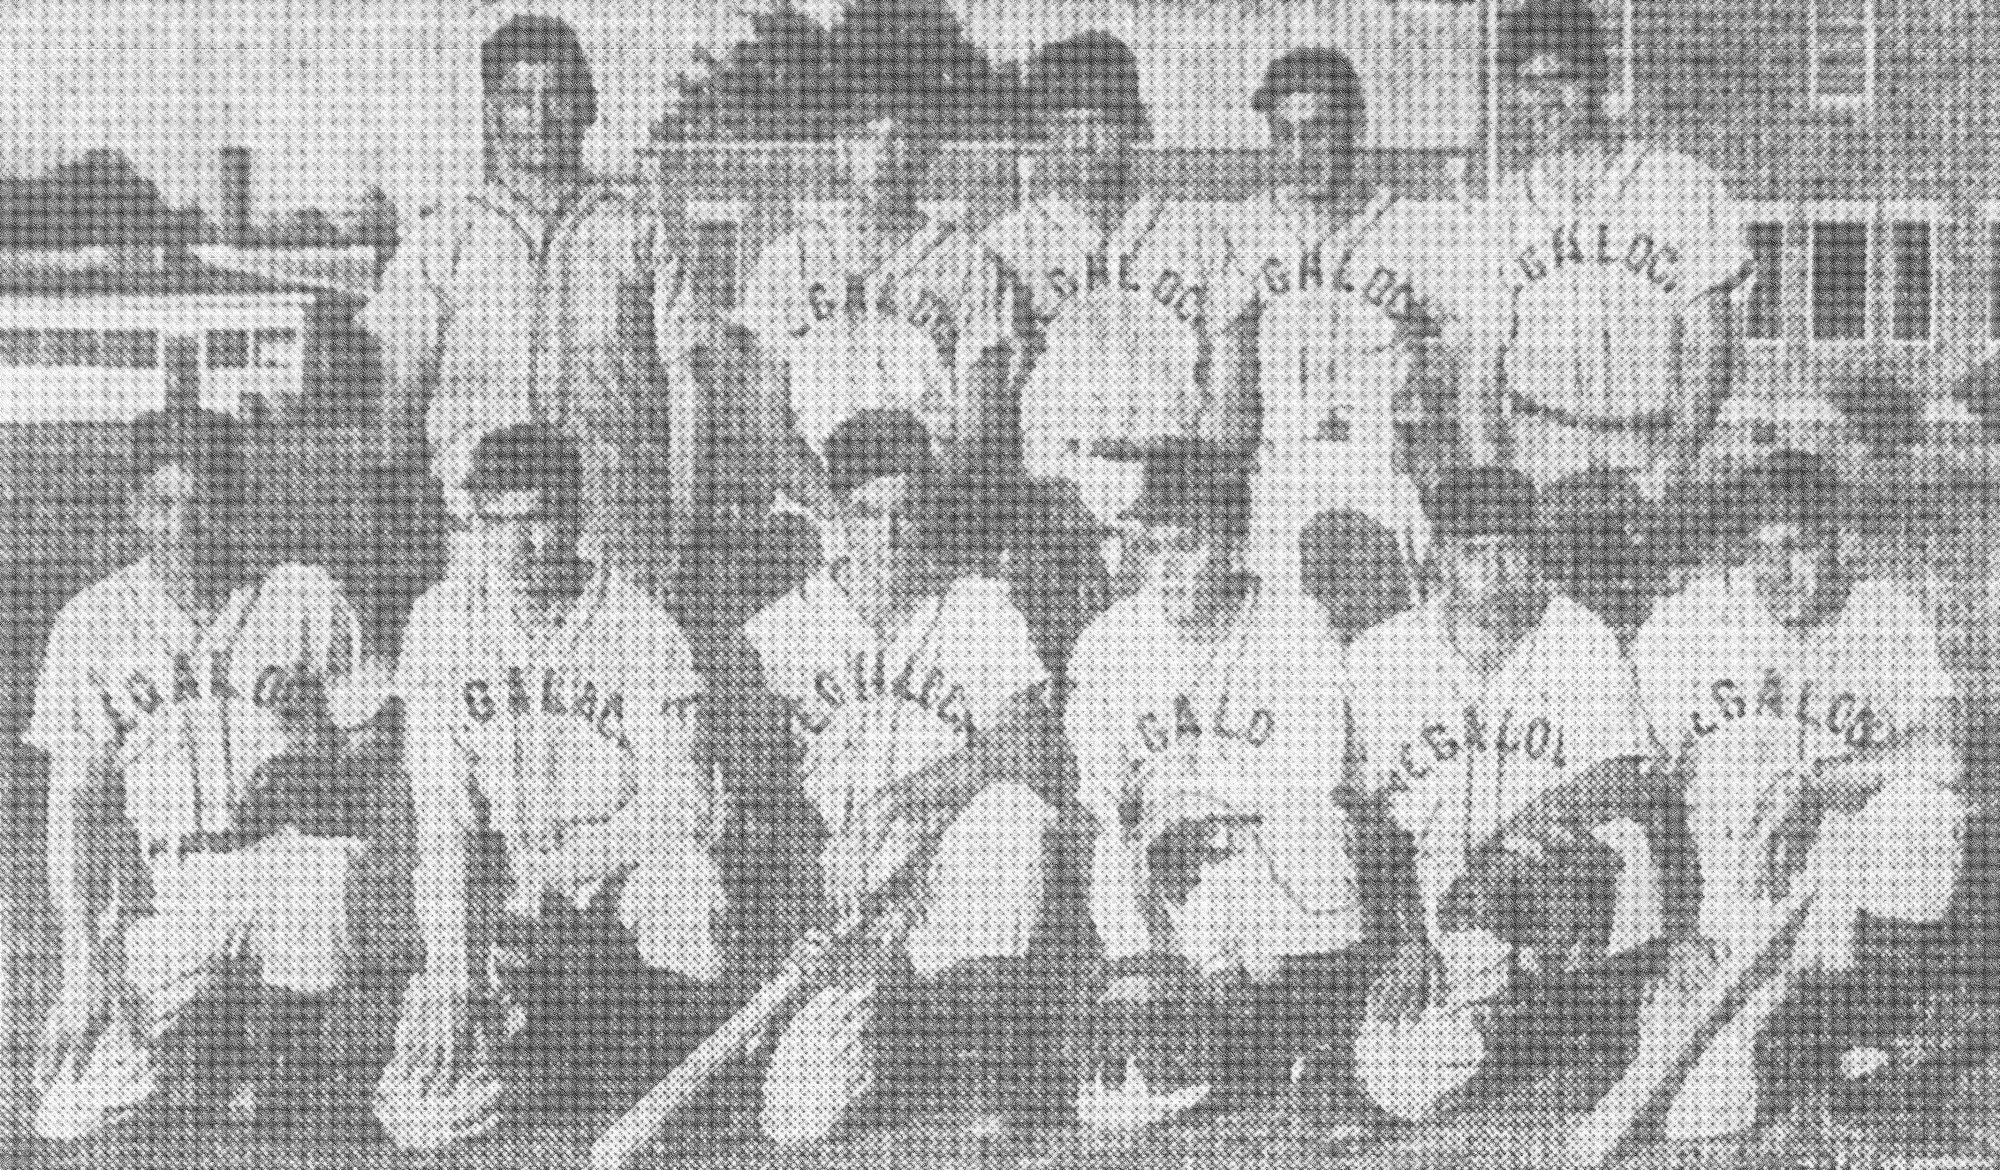 Most of the members of Segalock's Cotton Belt Team, entered in the local Cotton Belt Loop, are seen in 1951. First row, from left, are Early Berry, manager; Bobby Harden; Walter Berry; James Brown; Bill Pack; and Martin Plum, sponsor of the team. Standing from left are Paul Hawkins, Charley Gains, Charlie Mixon, Bill May and Bill Berry.